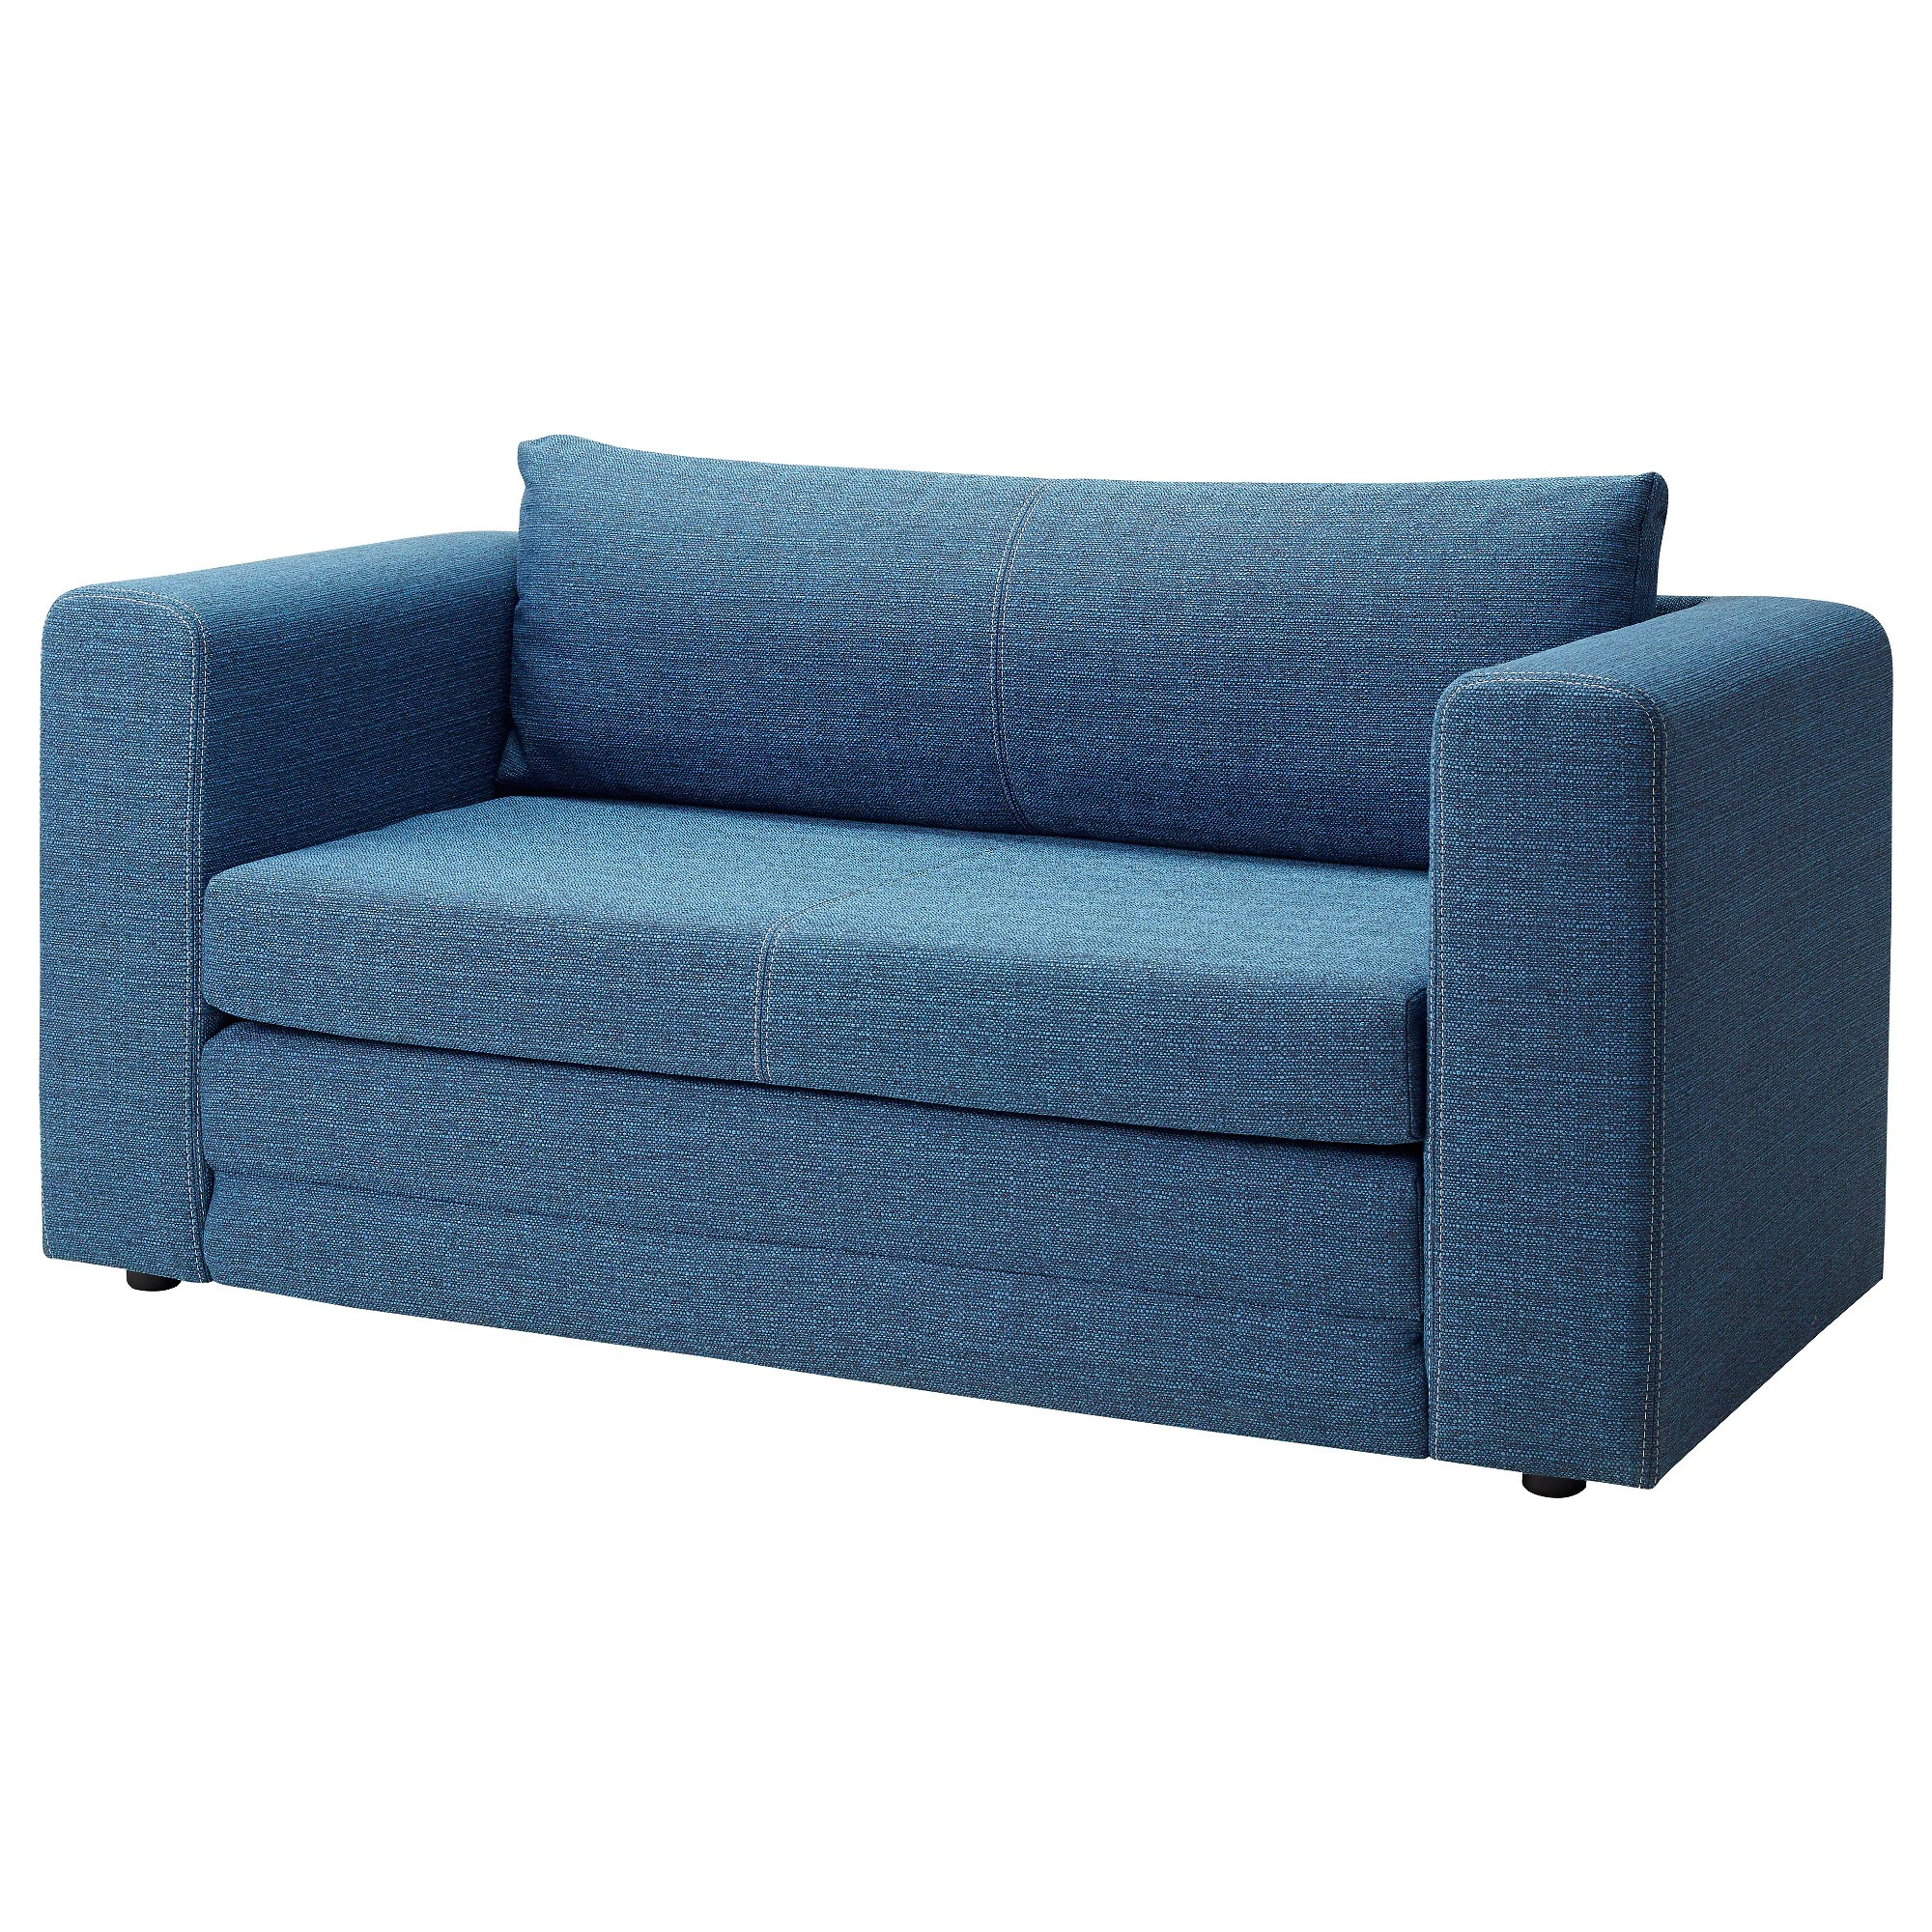 Couch Mit Bettfunktion Askeby 2er Bettsofa Grau